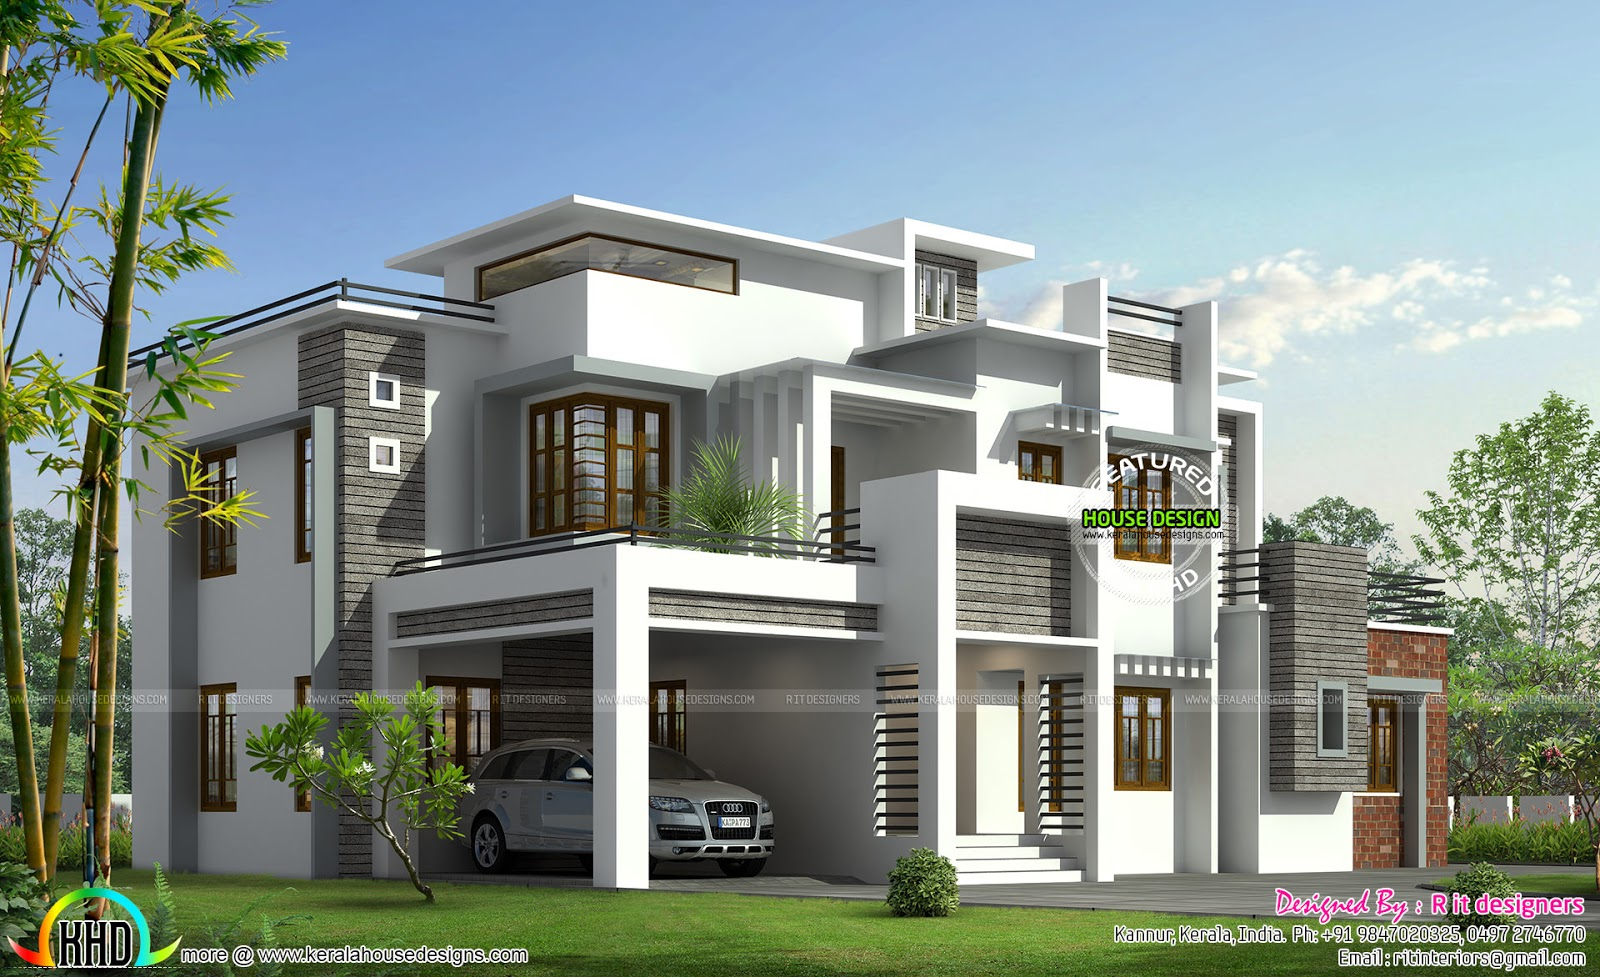 Box type house design modern box type bungalow philippines for Modern model homes